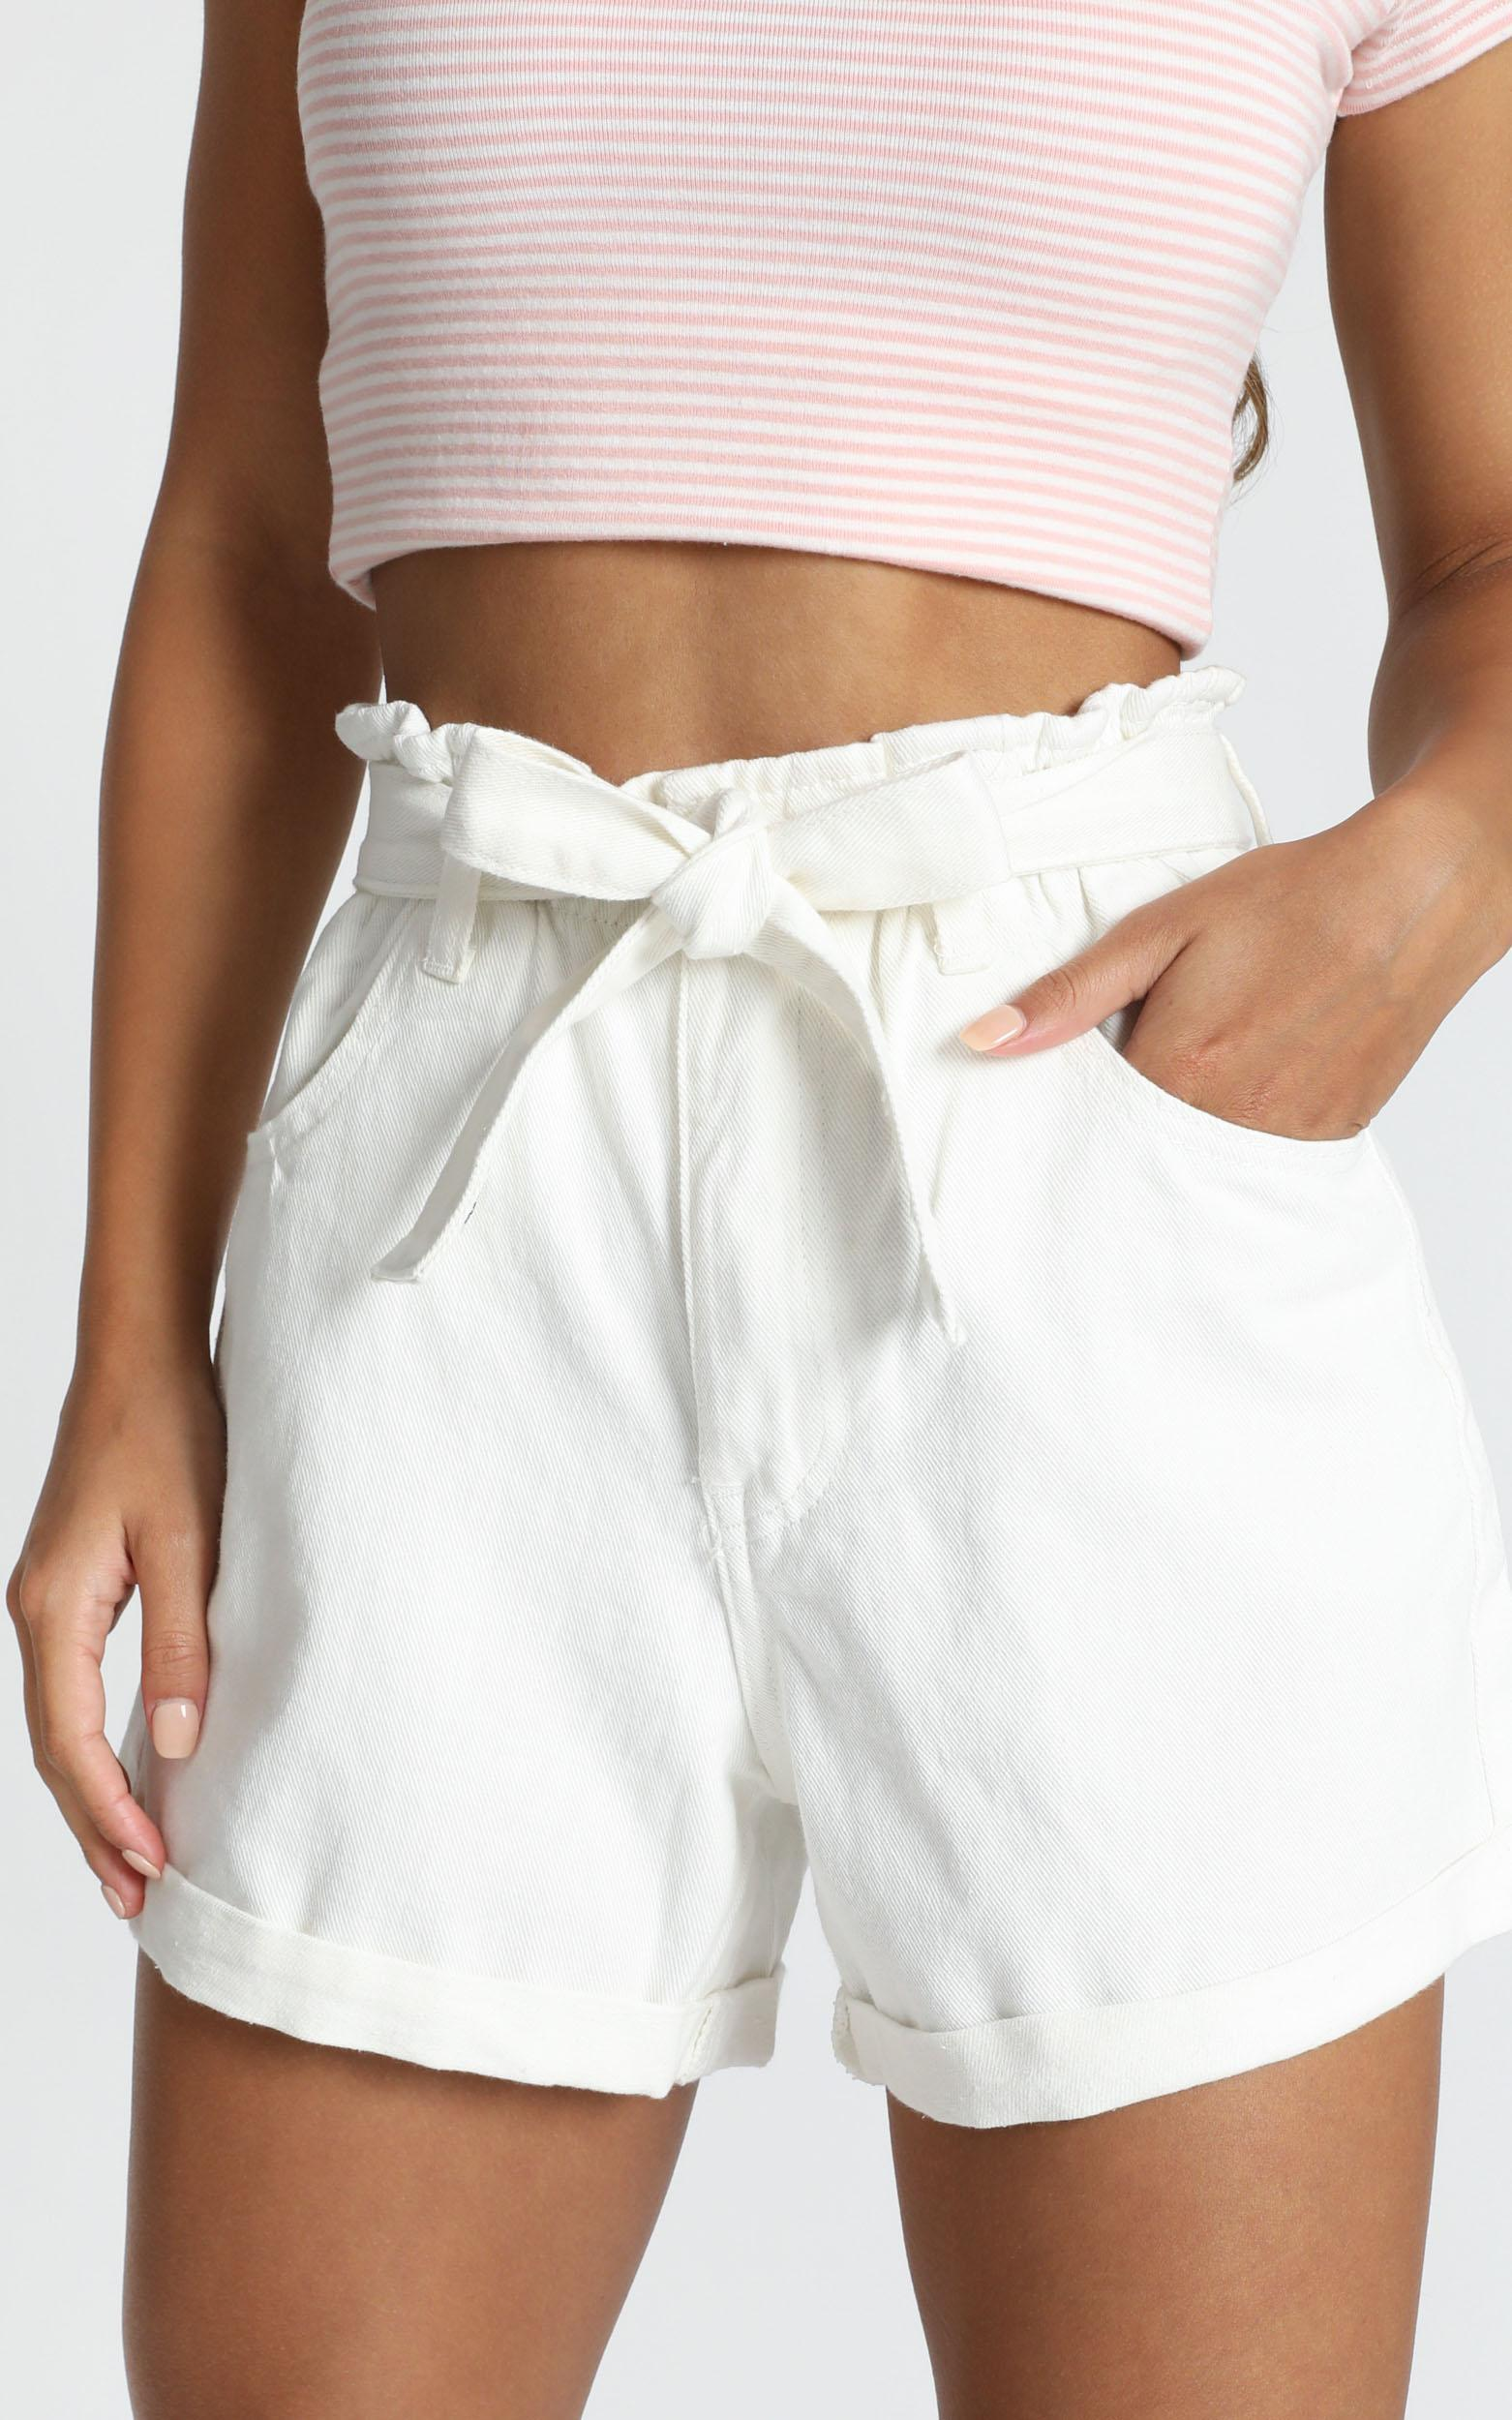 Another Language shorts In white denim - 20 (XXXXL), White, hi-res image number null